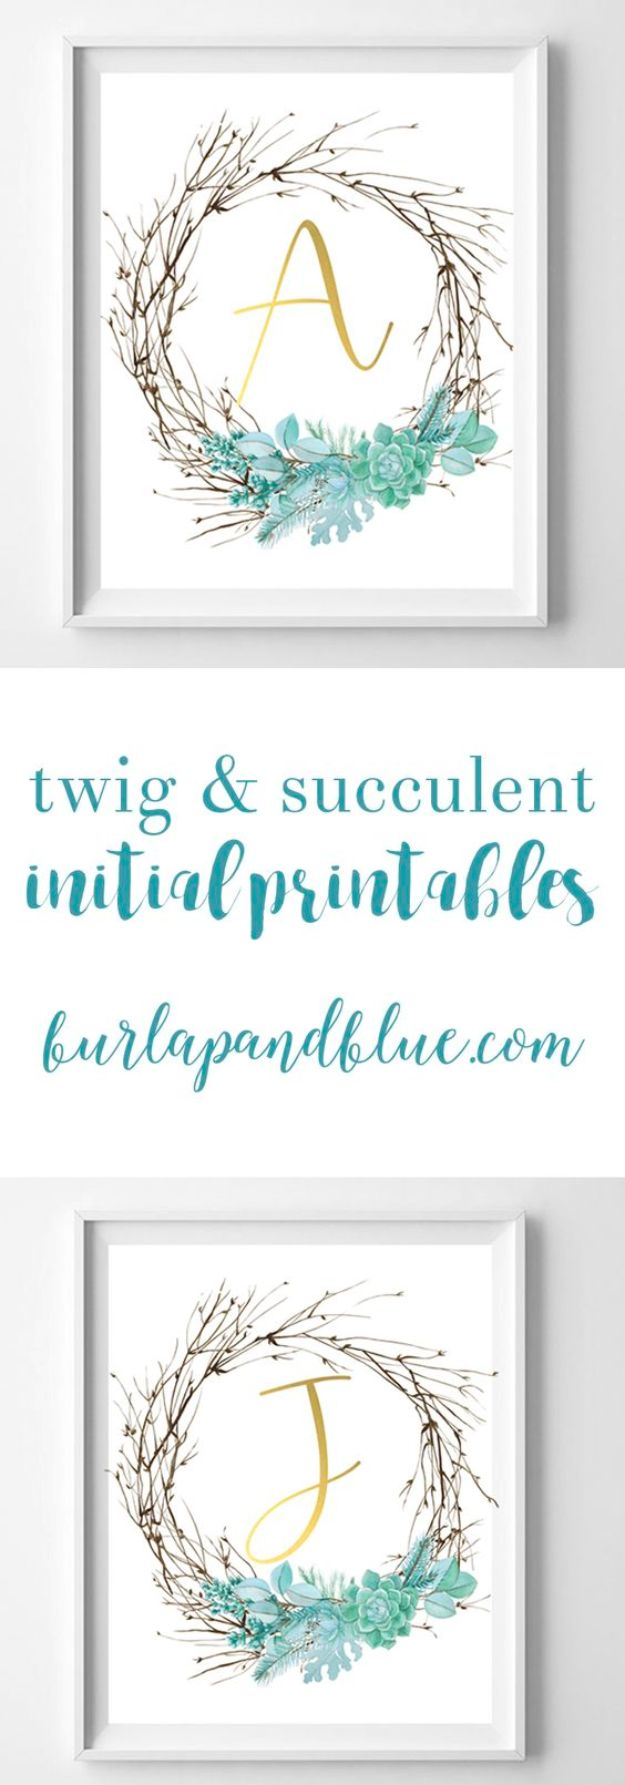 Free Printables For Your Walls - Twig And Succulent Initials Free Printables - Best Free Prints for Wall Art and Picture to Print for Home and Bedroom Decor - Ideas for the Home, Organization - Quotes for Bedroom and Kitchens, Vintage Bathroom Pictures - Downloadable Printable for Kids - DIY and Crafts by DIY JOY http://diyjoy.com/free-printables-walls